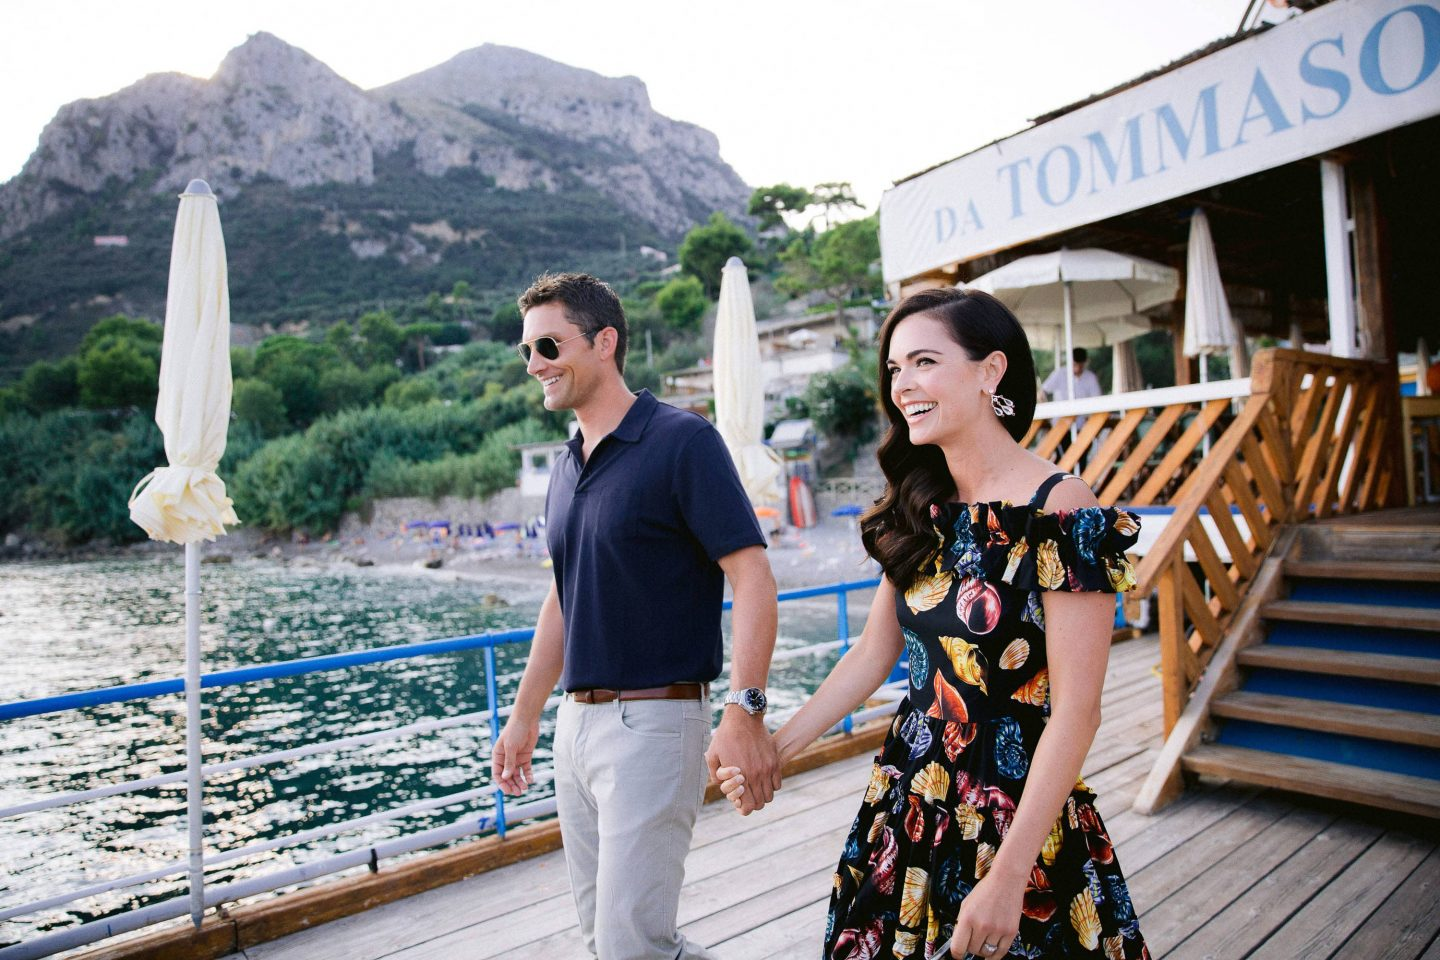 Bride and groom on sunset sail to Capri at this Amalfi Coast wedding weekend held Lo Scoglio | Photo by Allan Zepeda